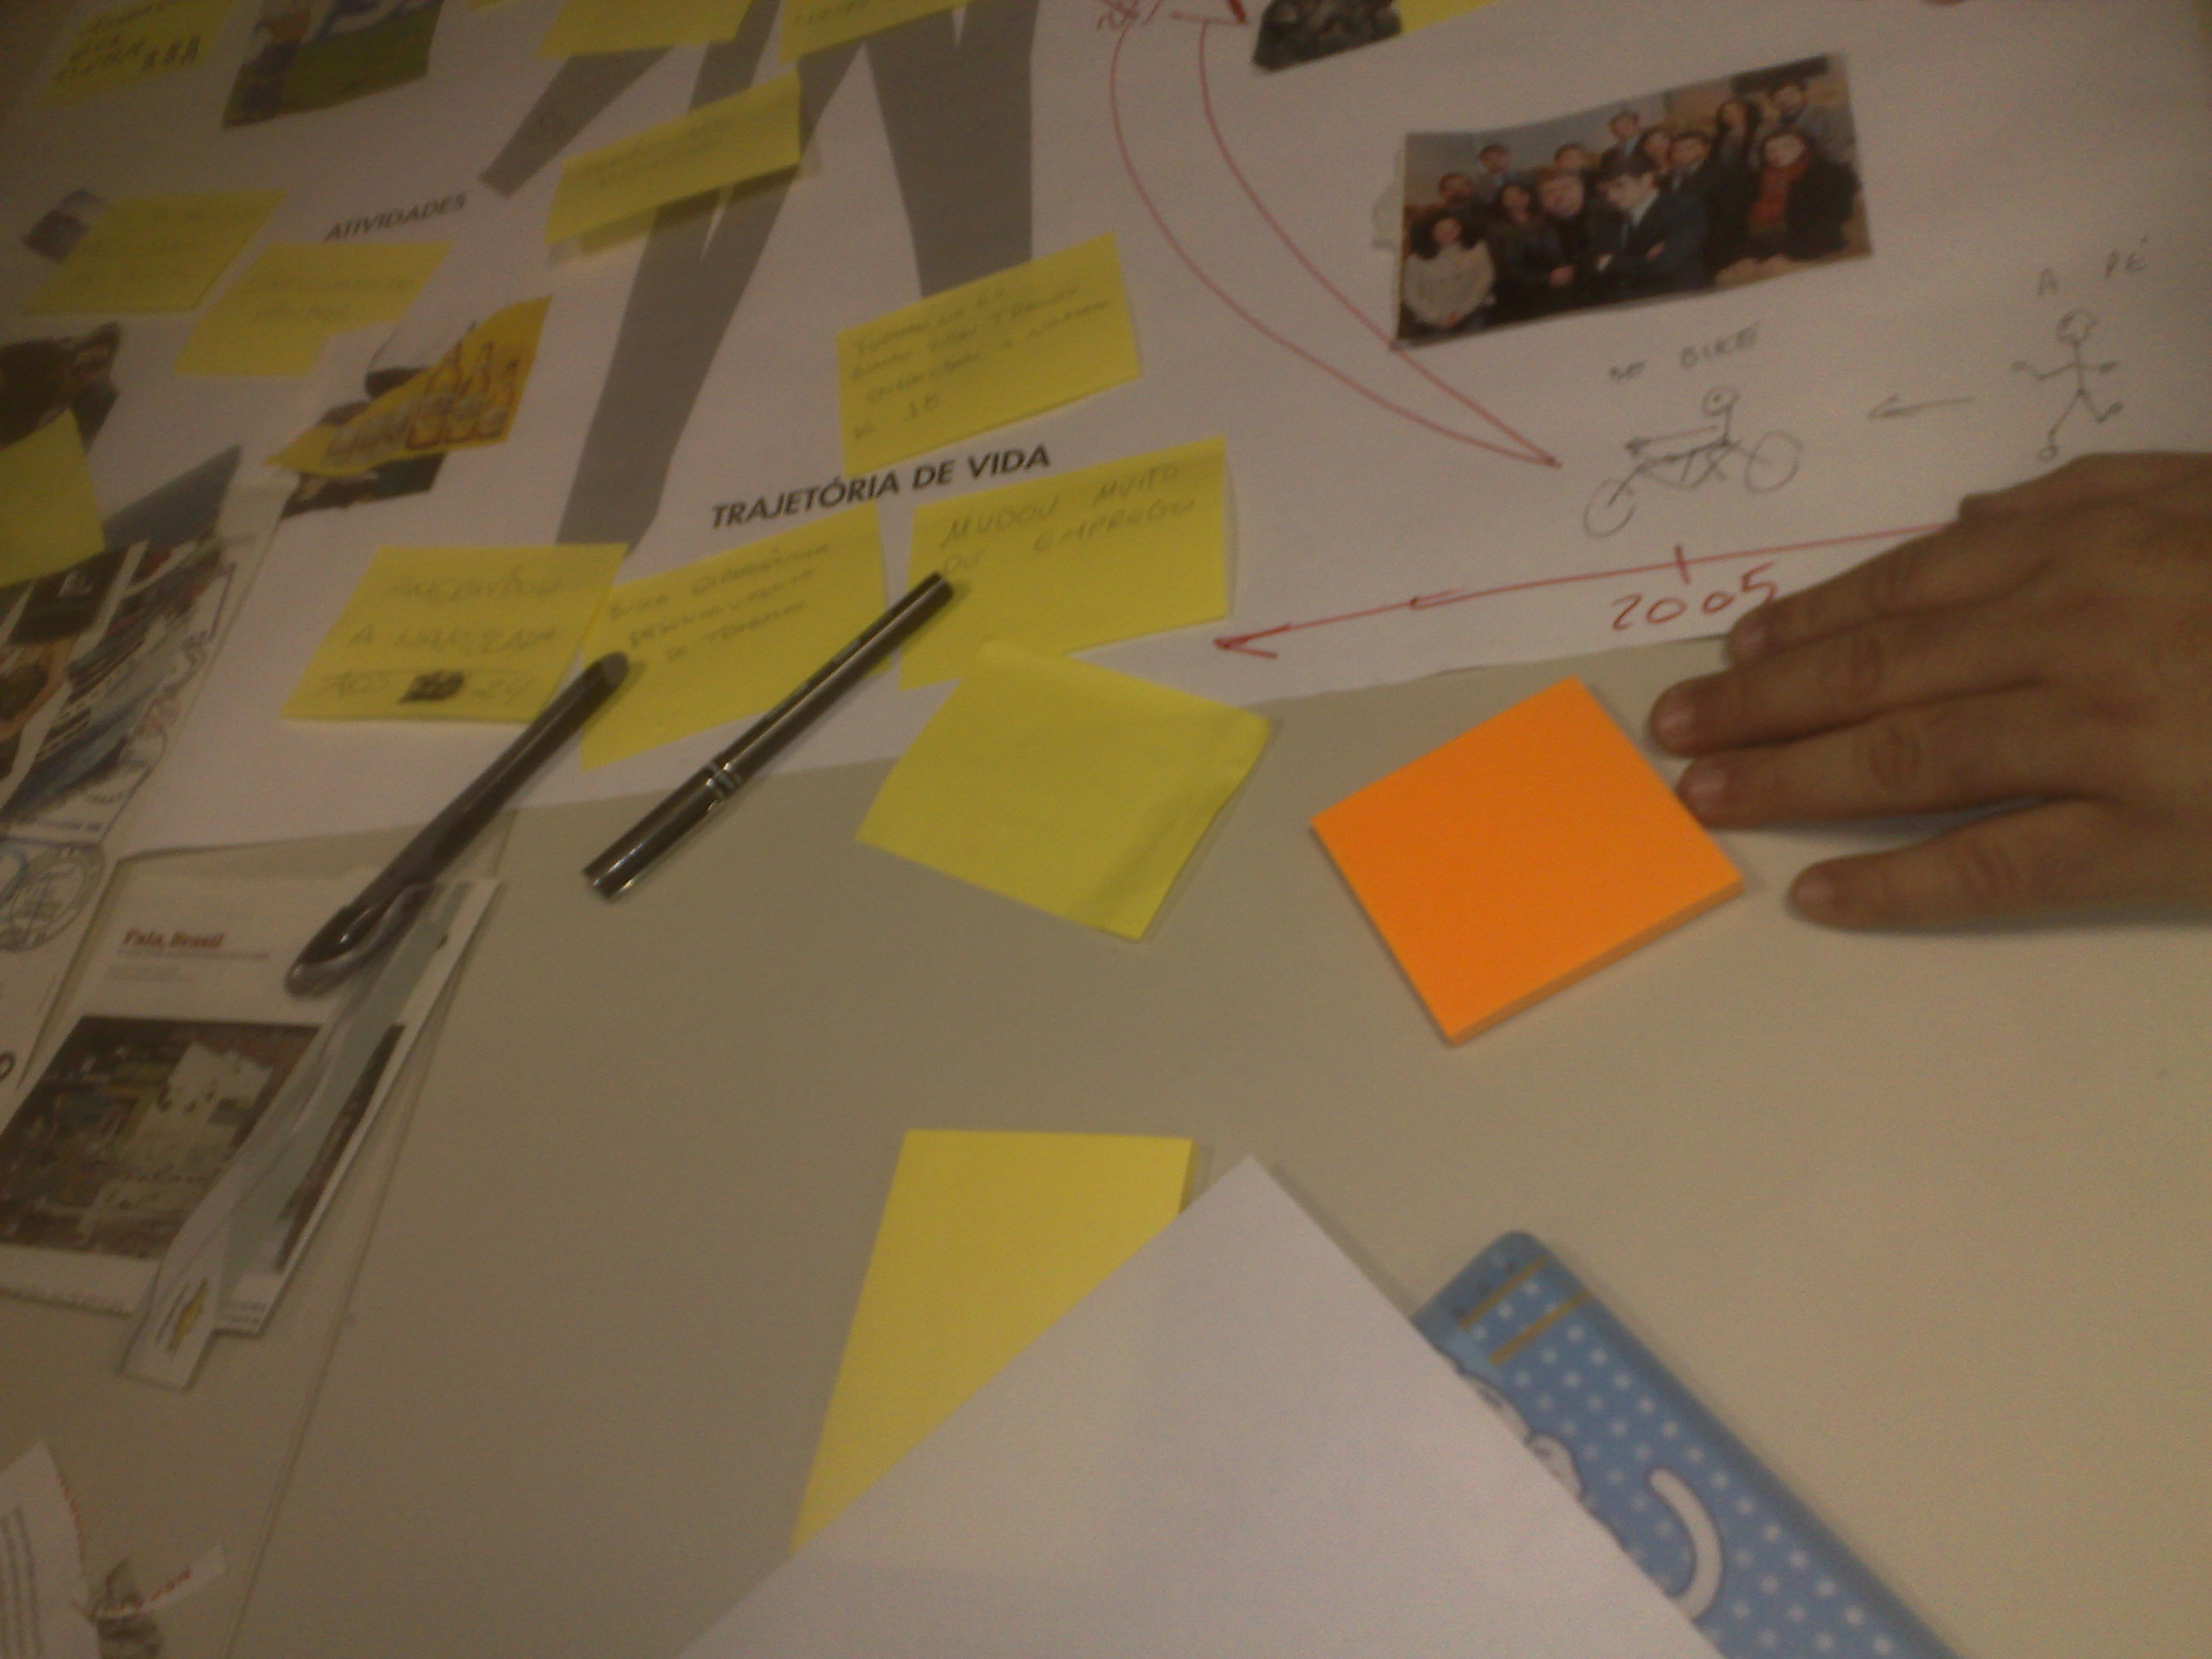 Day 4 - Design Thinking and Innovation - Profiling and Brainstorming w/@LuisAlt @TennyDesign